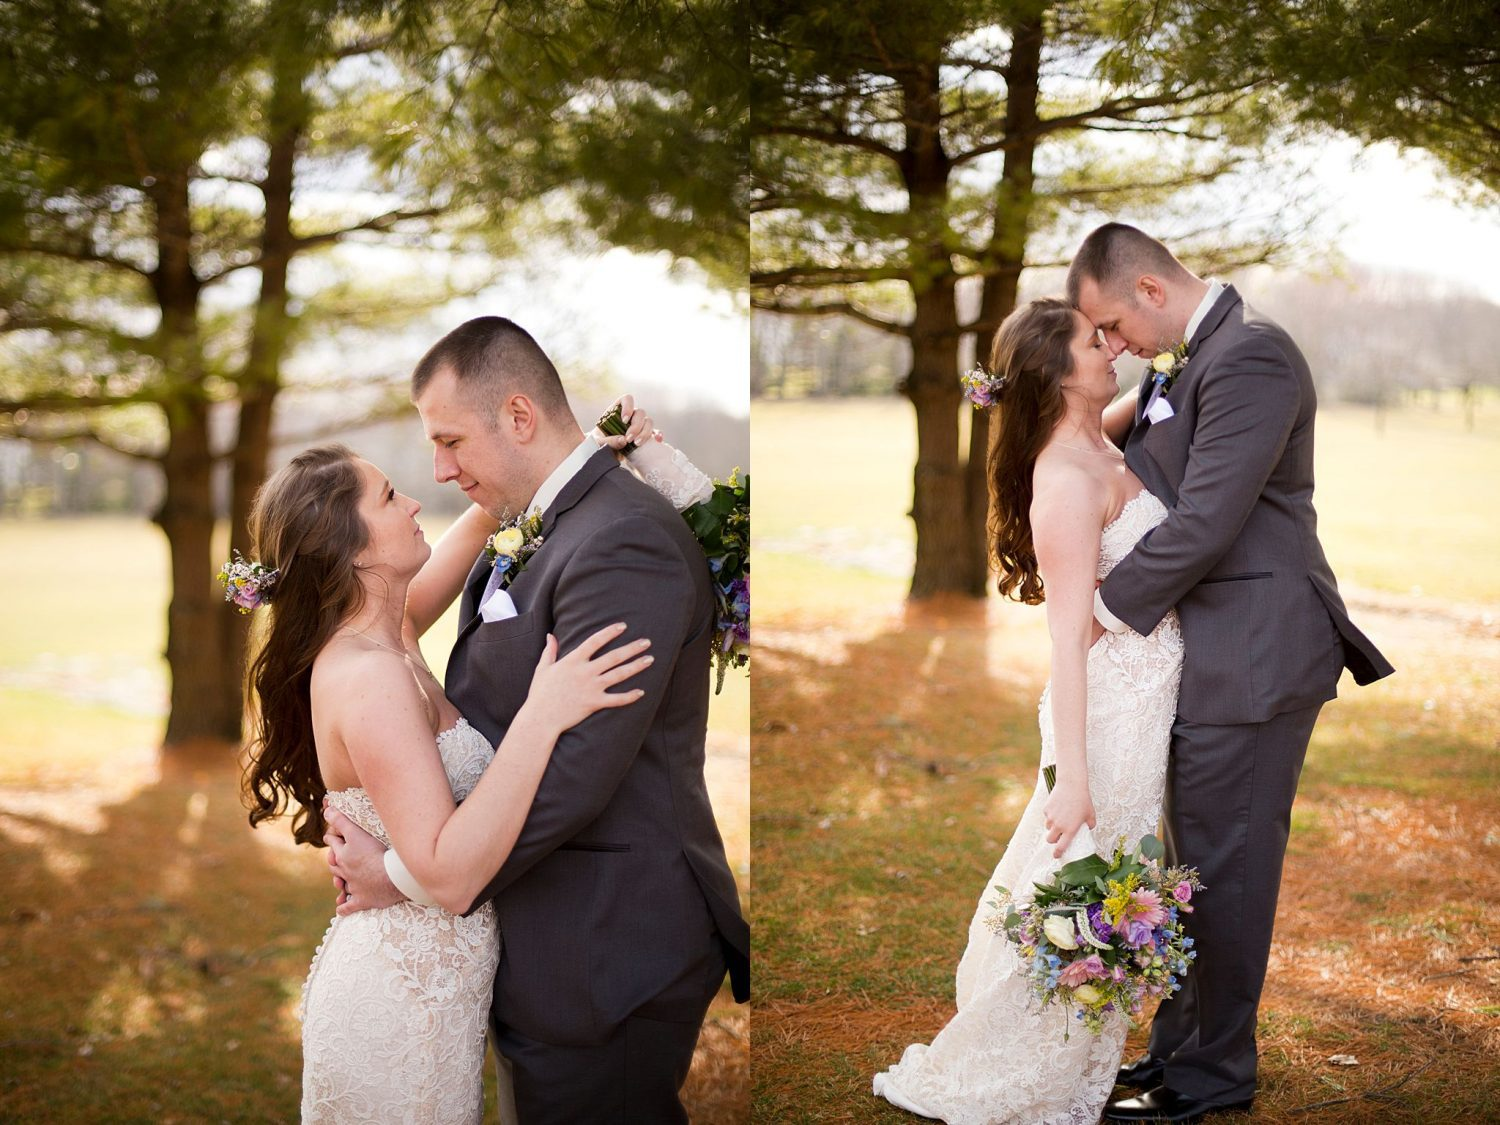 Bride and groom pose under pine trees for romantic portraits.